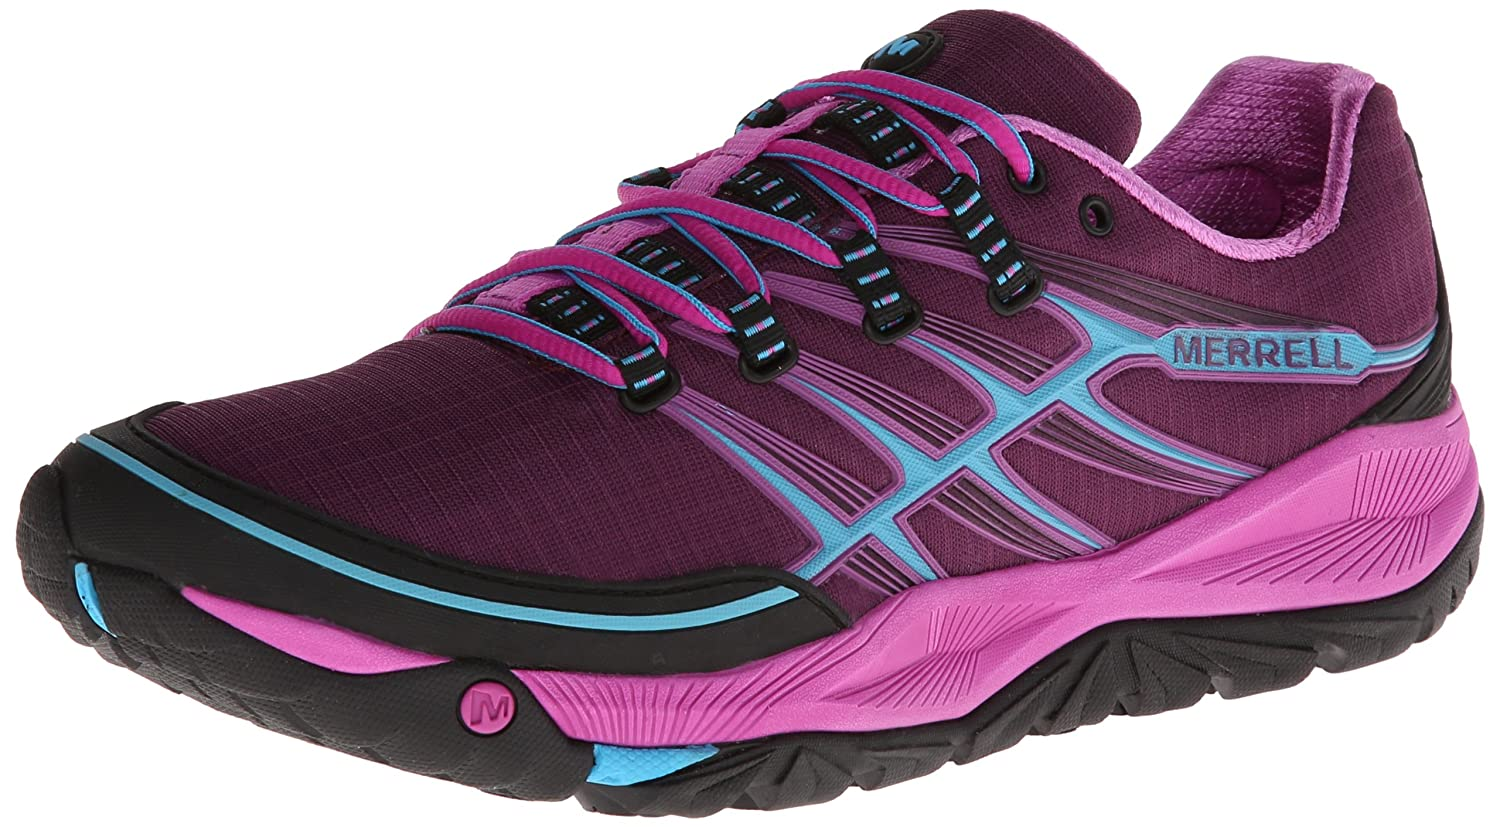 Merrell Women's All Out Rush Trail Running Shoe B00D1PDQRK 5.5 B(M) US|Purple/Horizon Blue